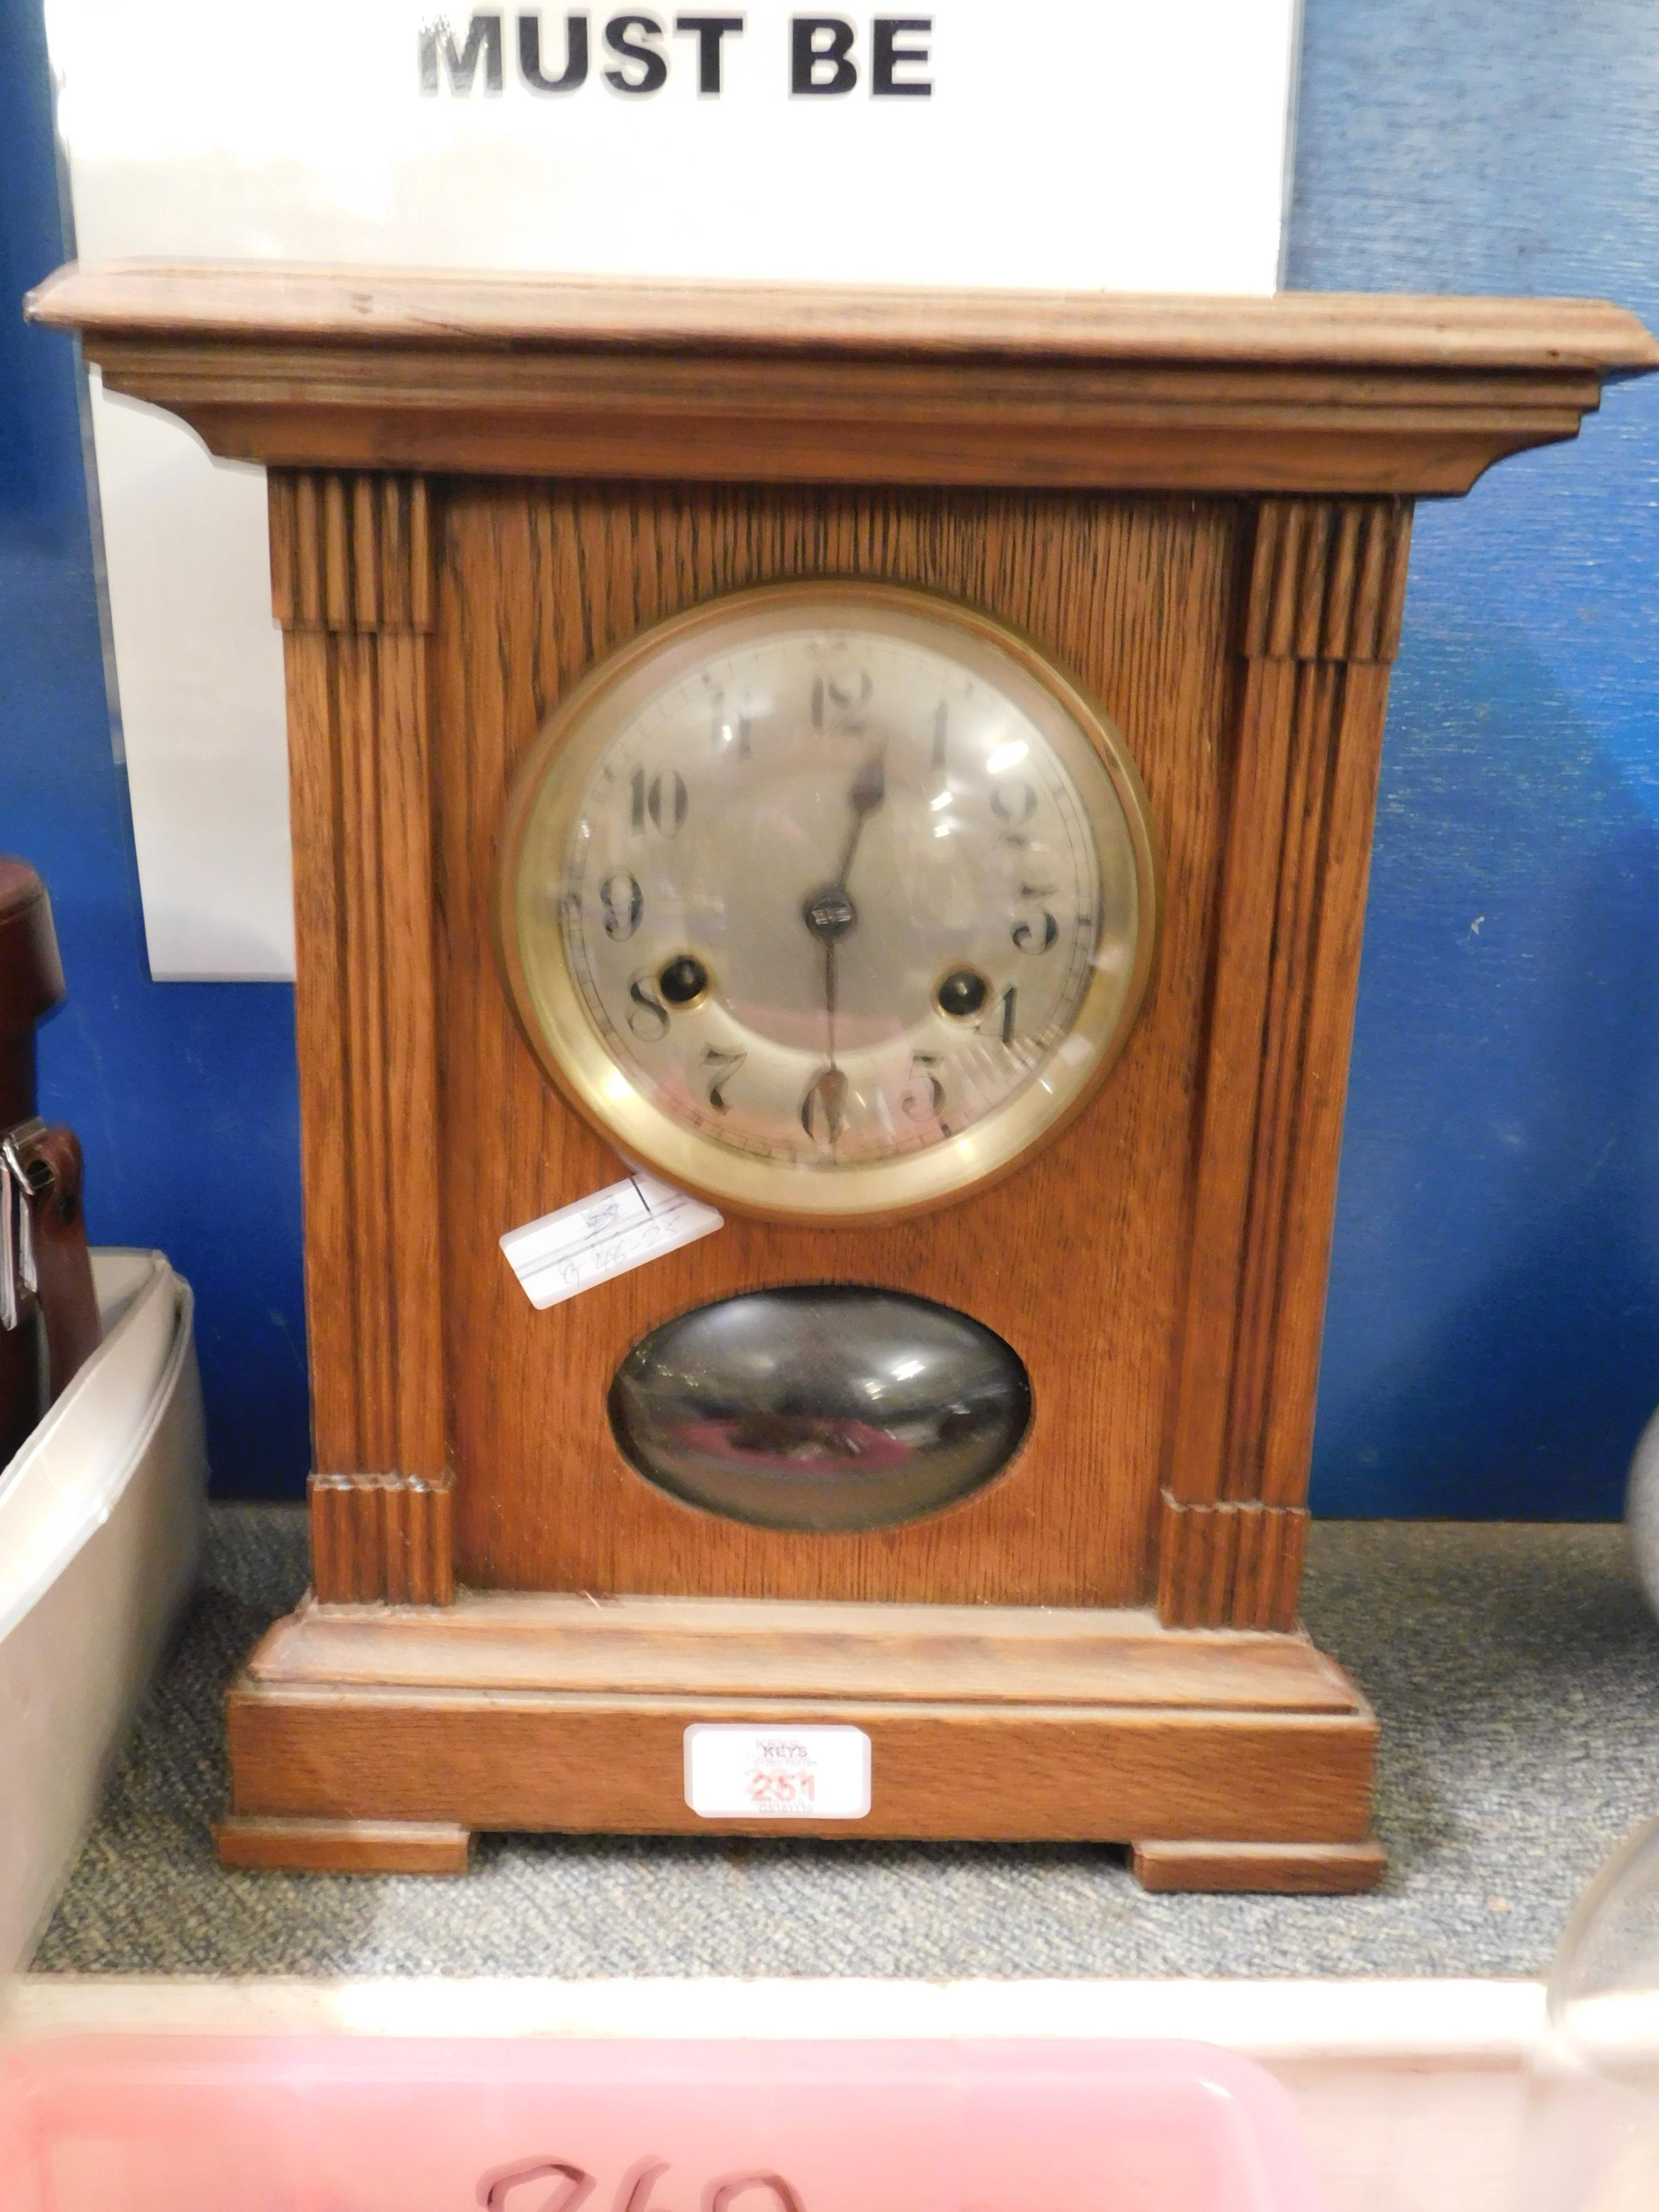 Lot 251 - OAK FRAMED MANTEL CLOCK WITH SILVERED DIAL